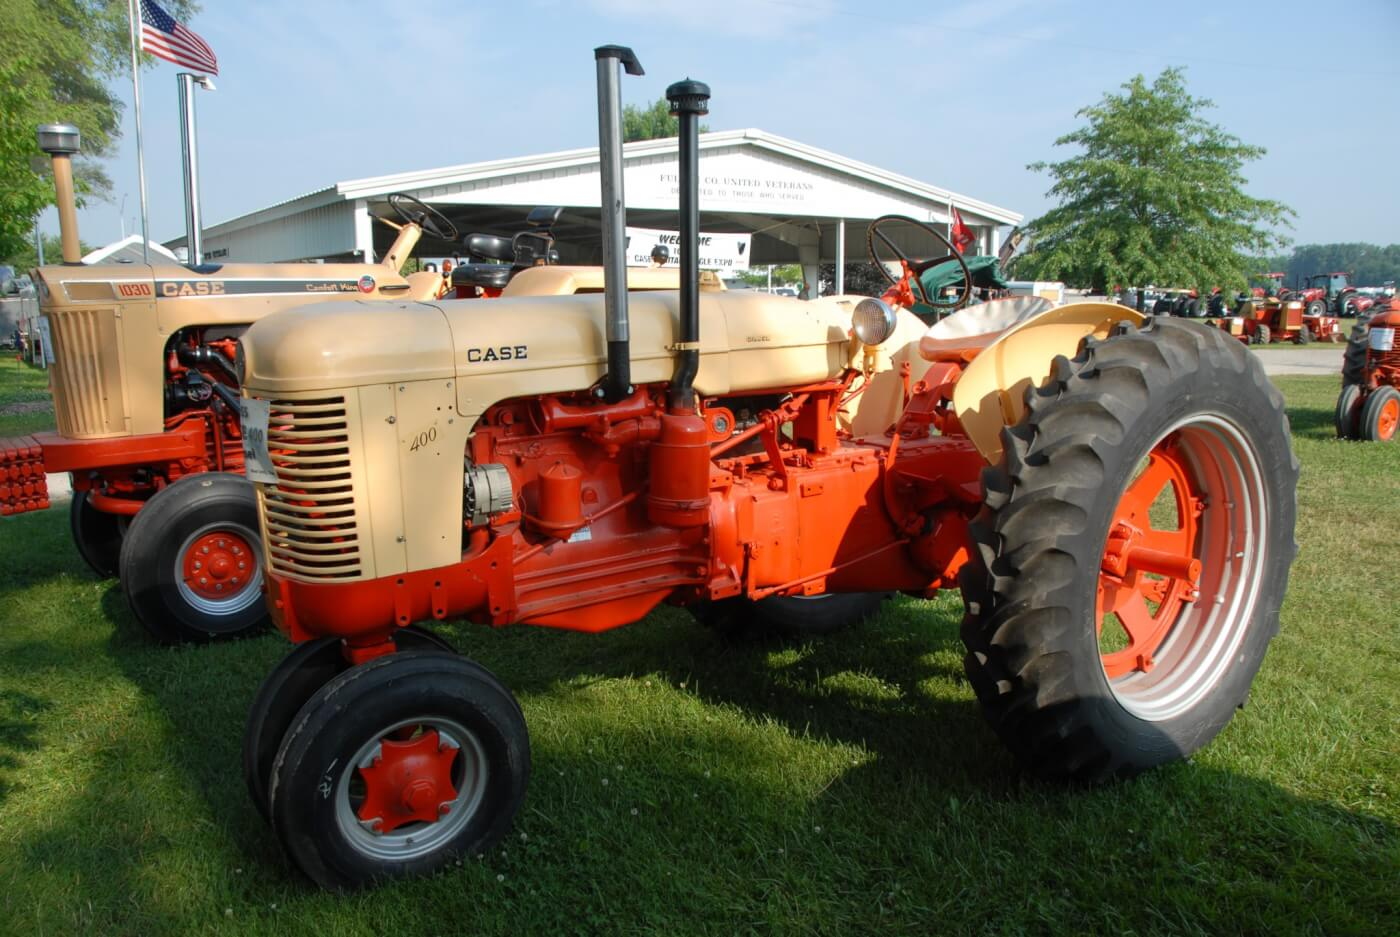 The Case 401 was a mid-sized diesel general purpose (rowcrop) tractor that was big enough for many larger jobs and small enough to be useful as a farmyard utility. This is the most common of the 400 series built for 1955, with some 2,798 built that year, outselling the spark-ignition units by about 85 units. The rowcrops were available with a single-wheel front, a dual-wheel front or with an adjustable-track wide-front axle. This tractor is owned by Dale Stamm and was seen at the 2014 National Threshers Association show at Wauseon, Ohio, where Case tractors were being celebrated.